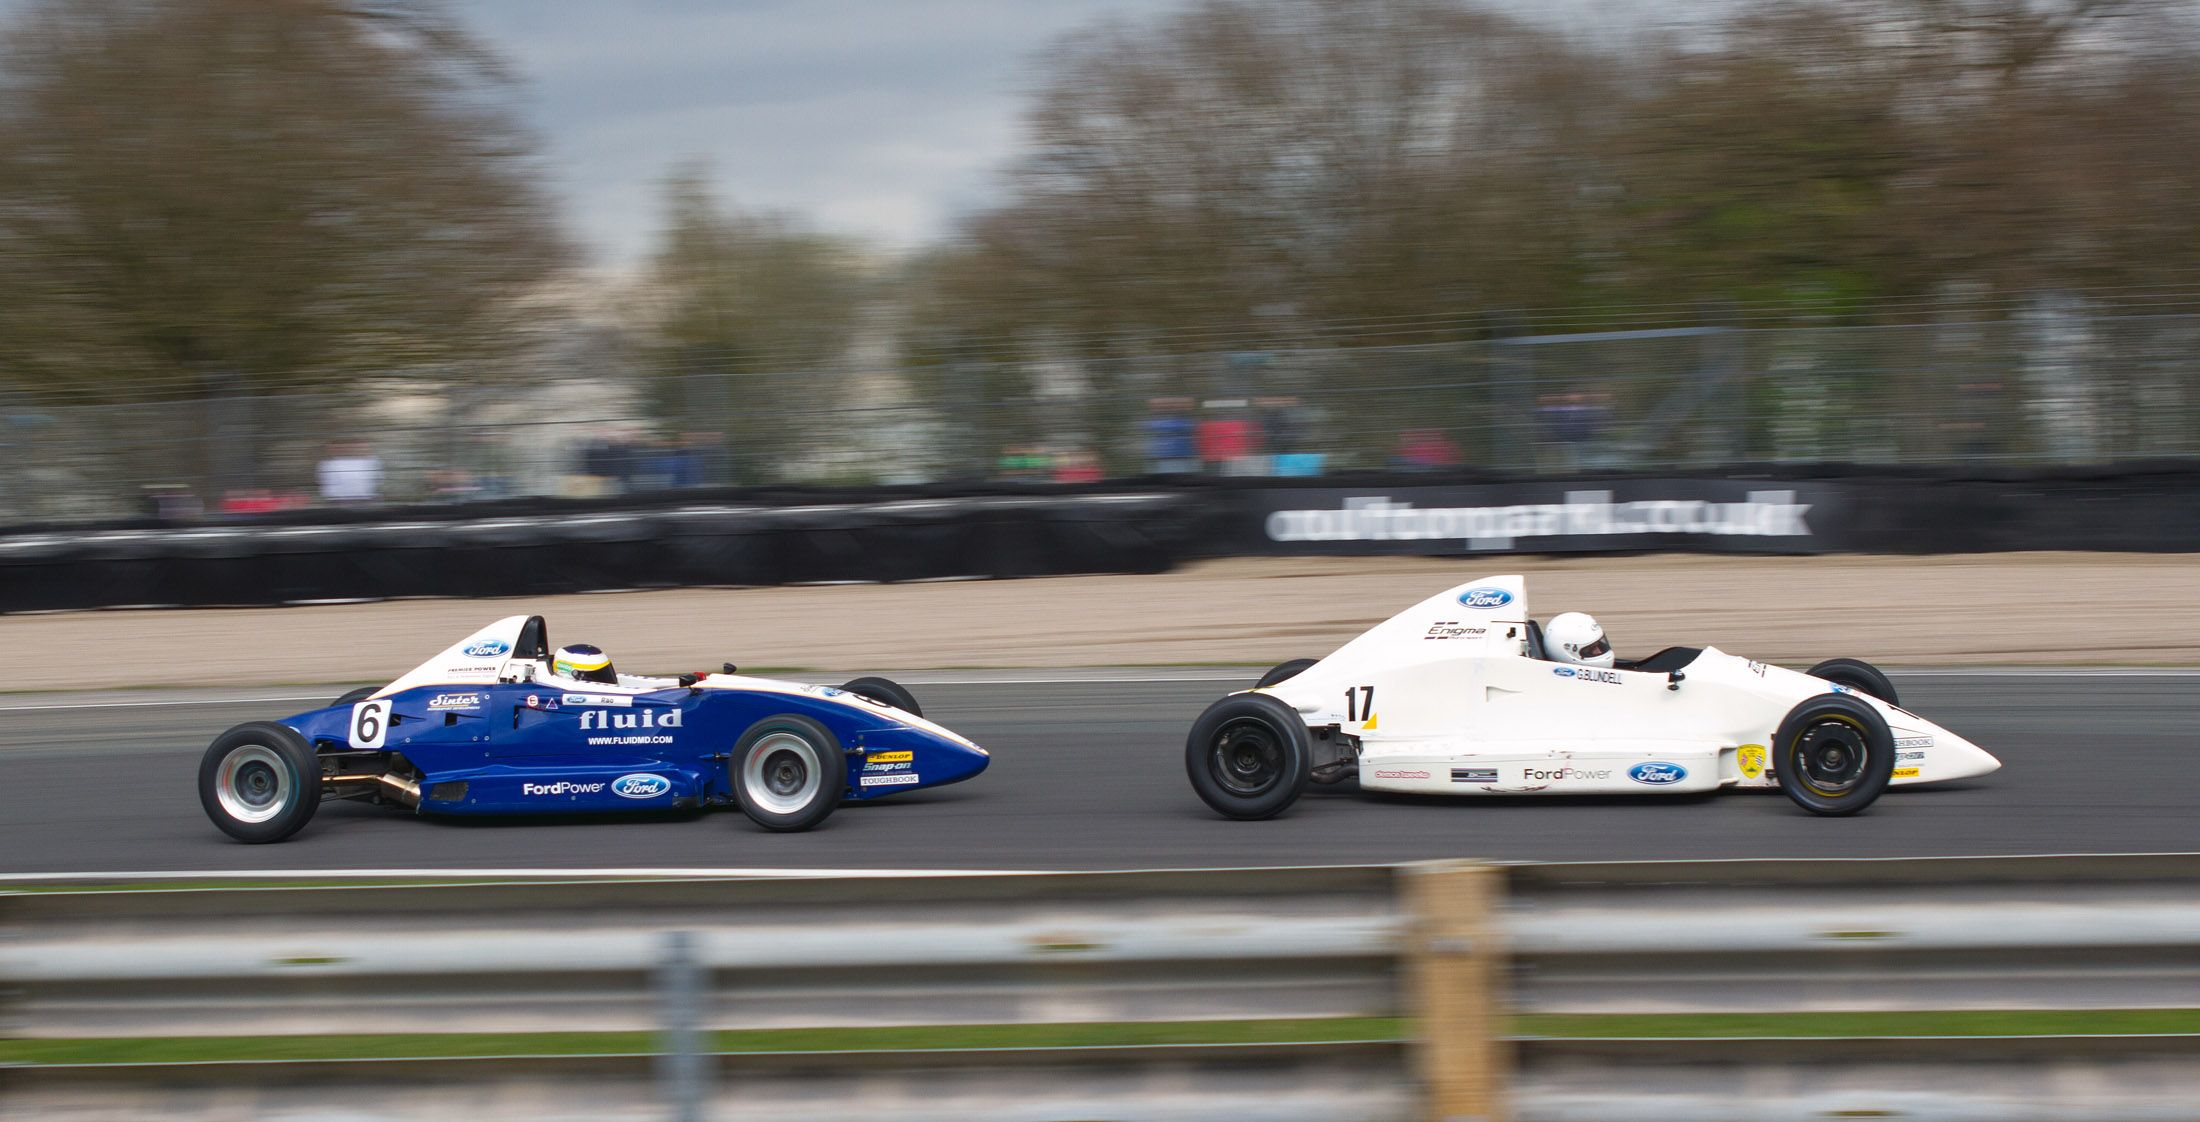 Old School Formual Fords in race mode